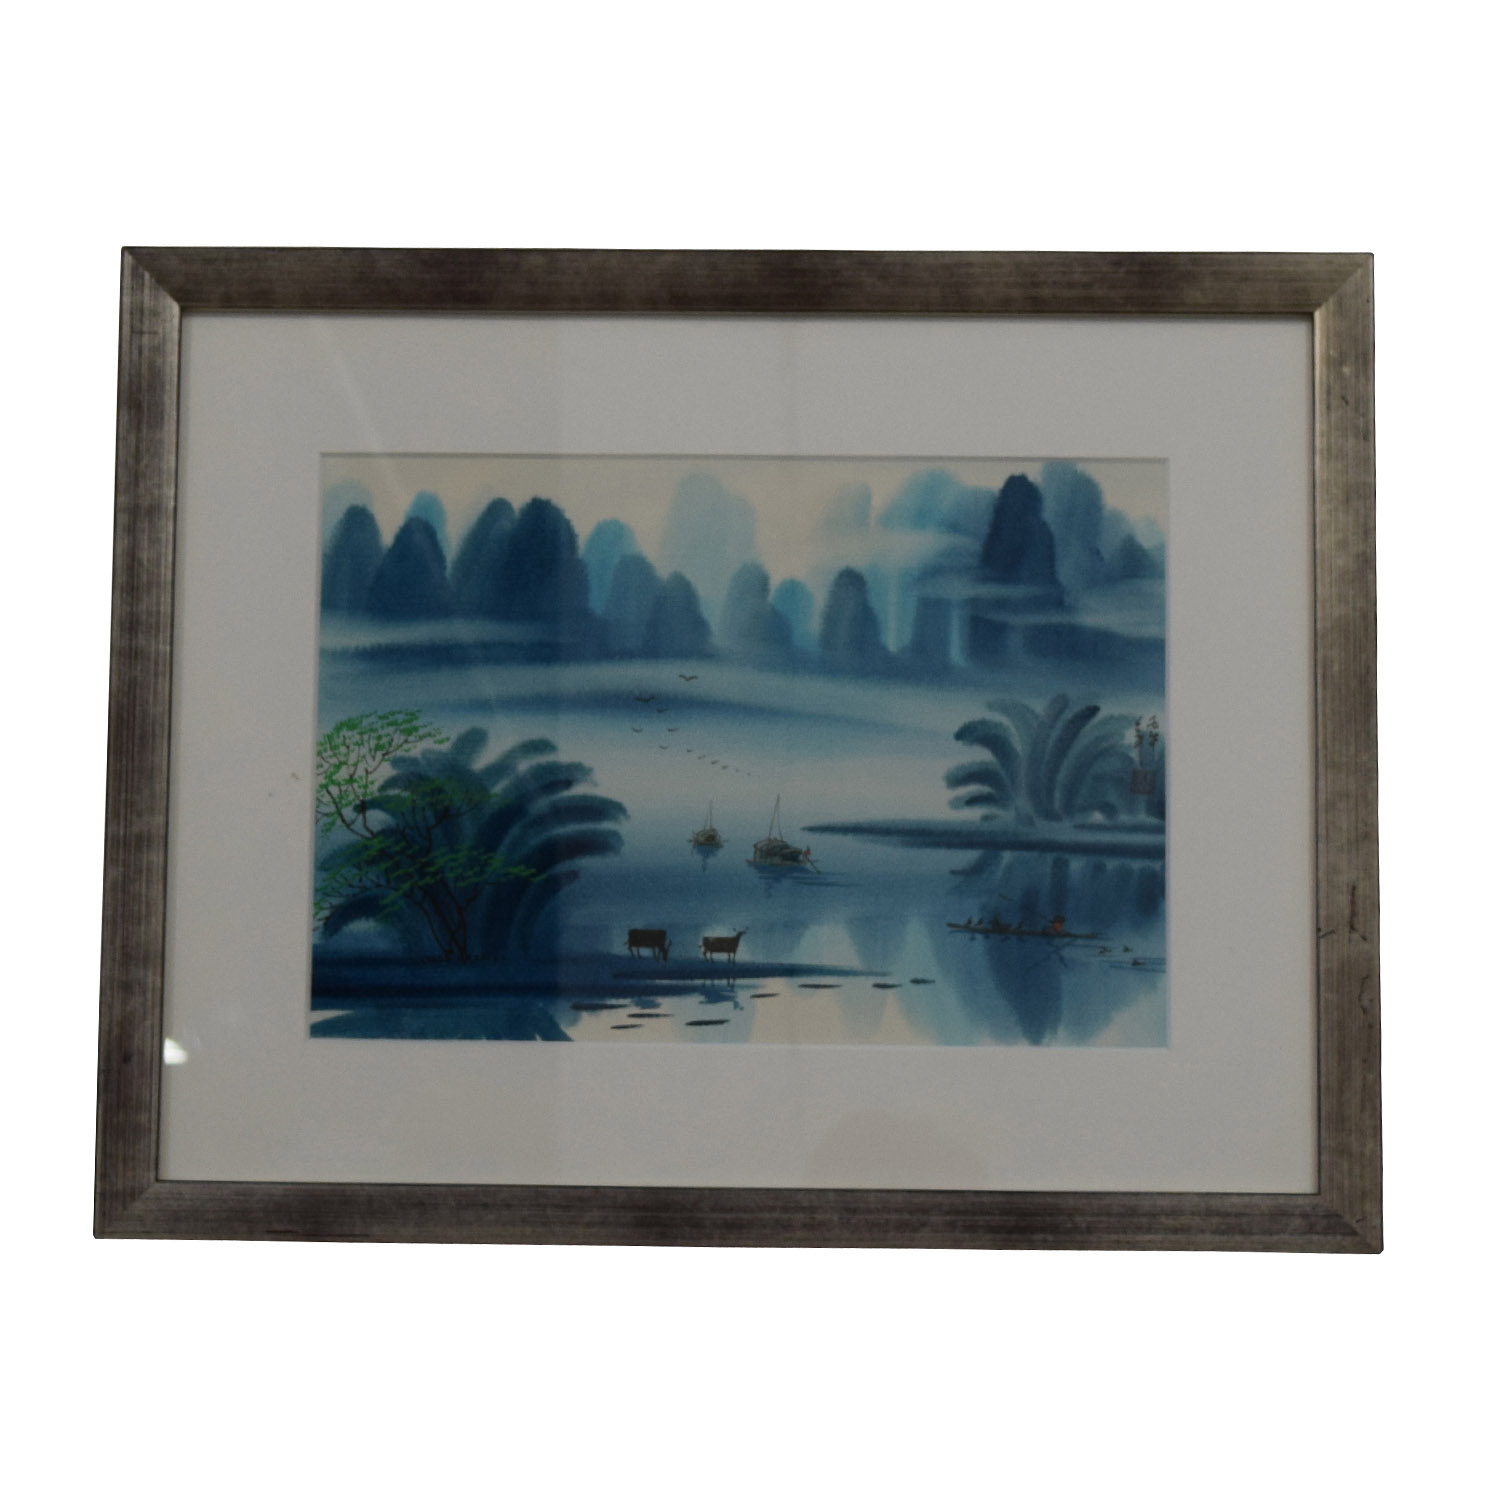 Original Chinese Watercolor Landscape Blue Days with Cows on sale